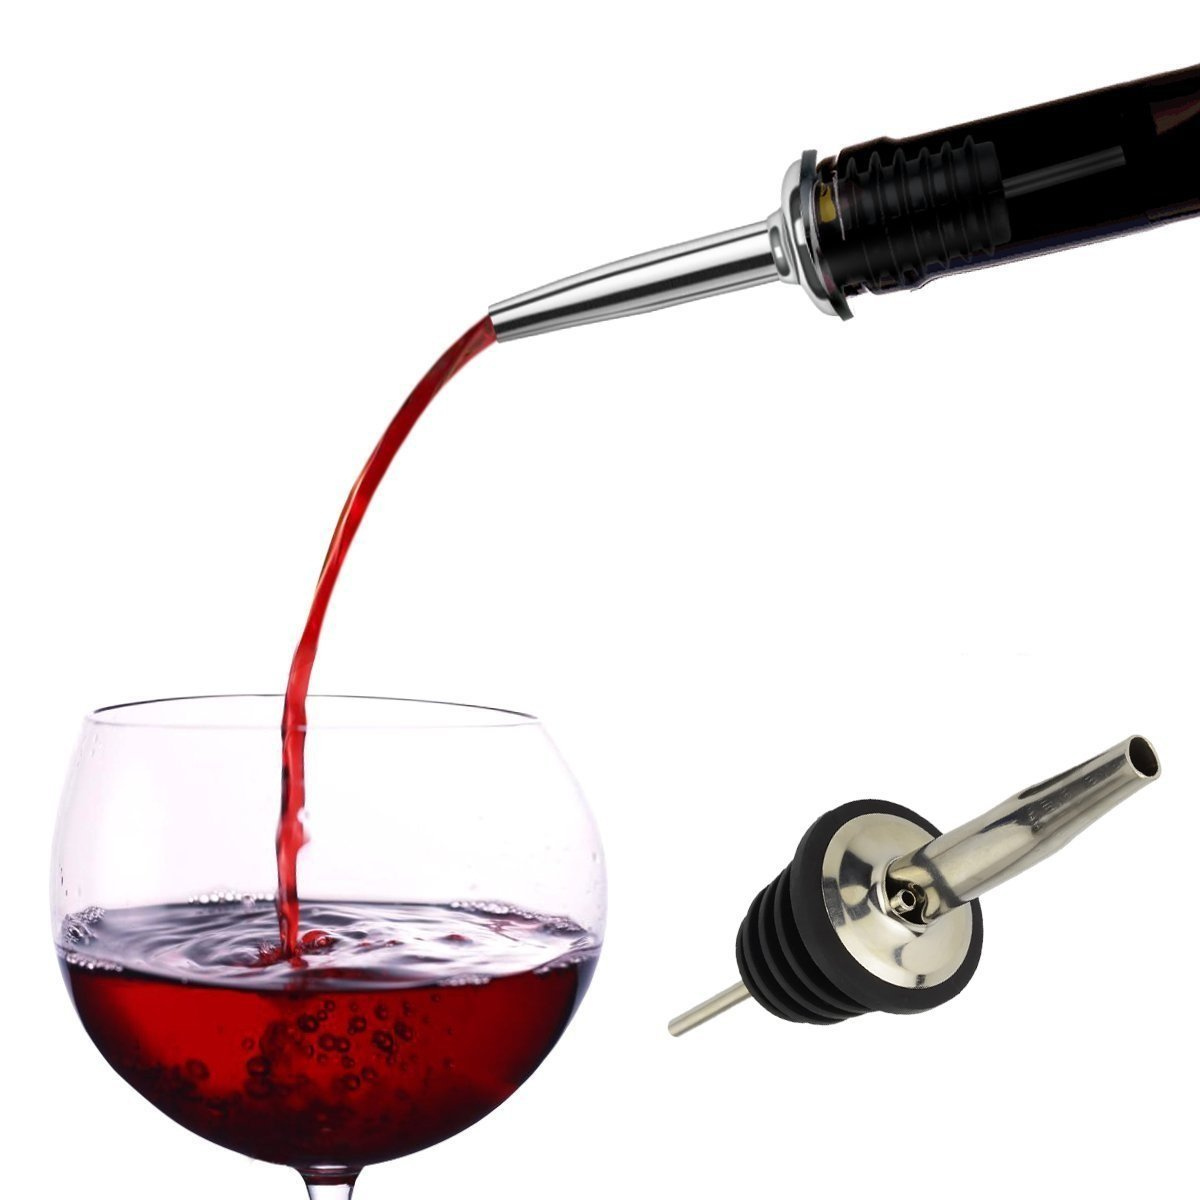 Liquor Pour Stainless Steel Classic Bottle Speed Pourers with Tapered Spout (12- pack)